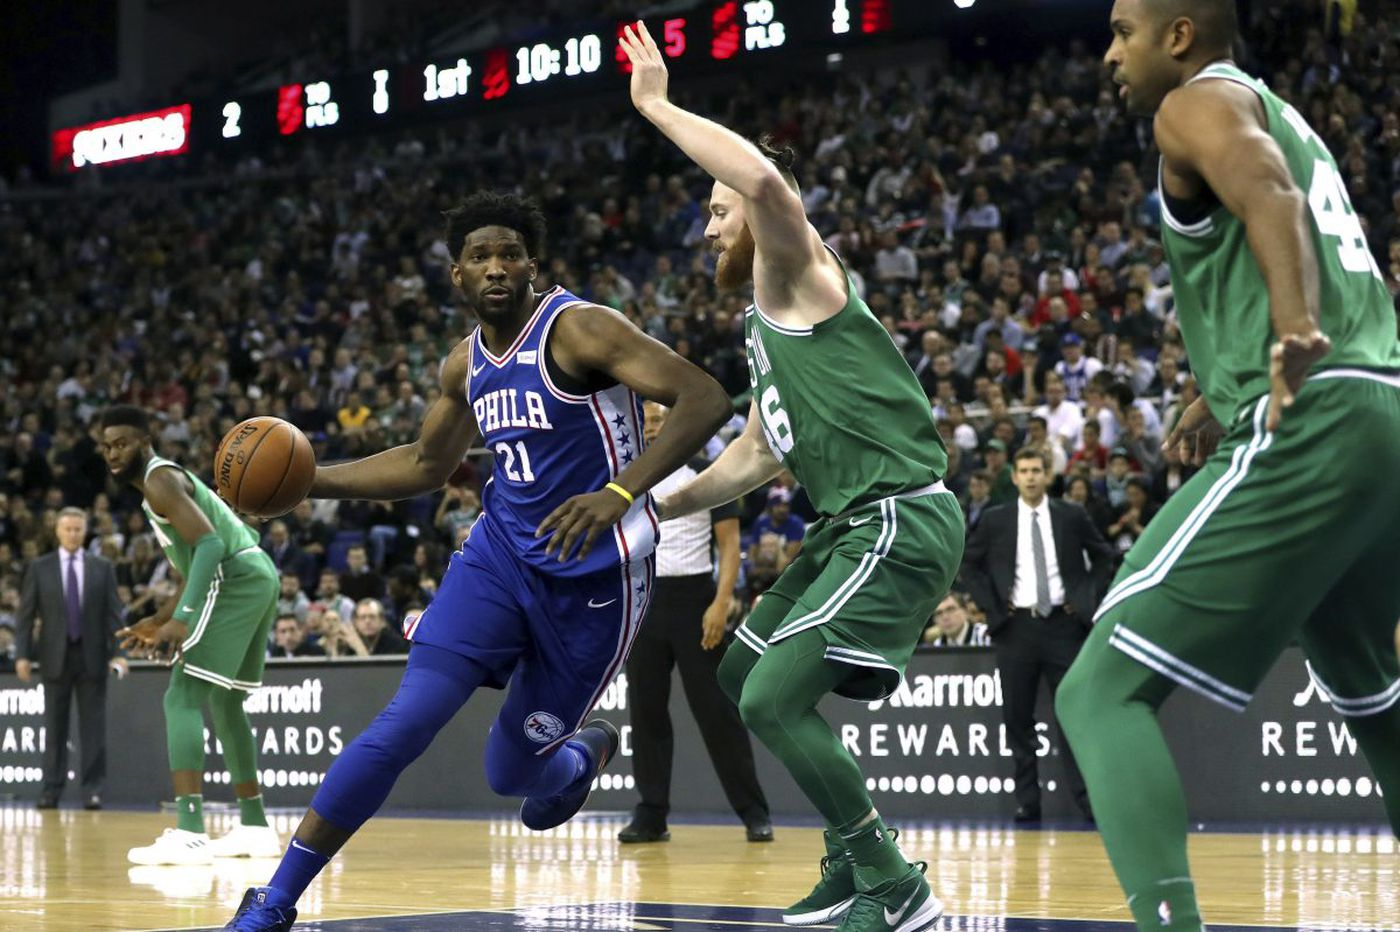 Sixers-Celtics observations, best and worst awards: Jaylen Brown, Robert Covington, another blown lead